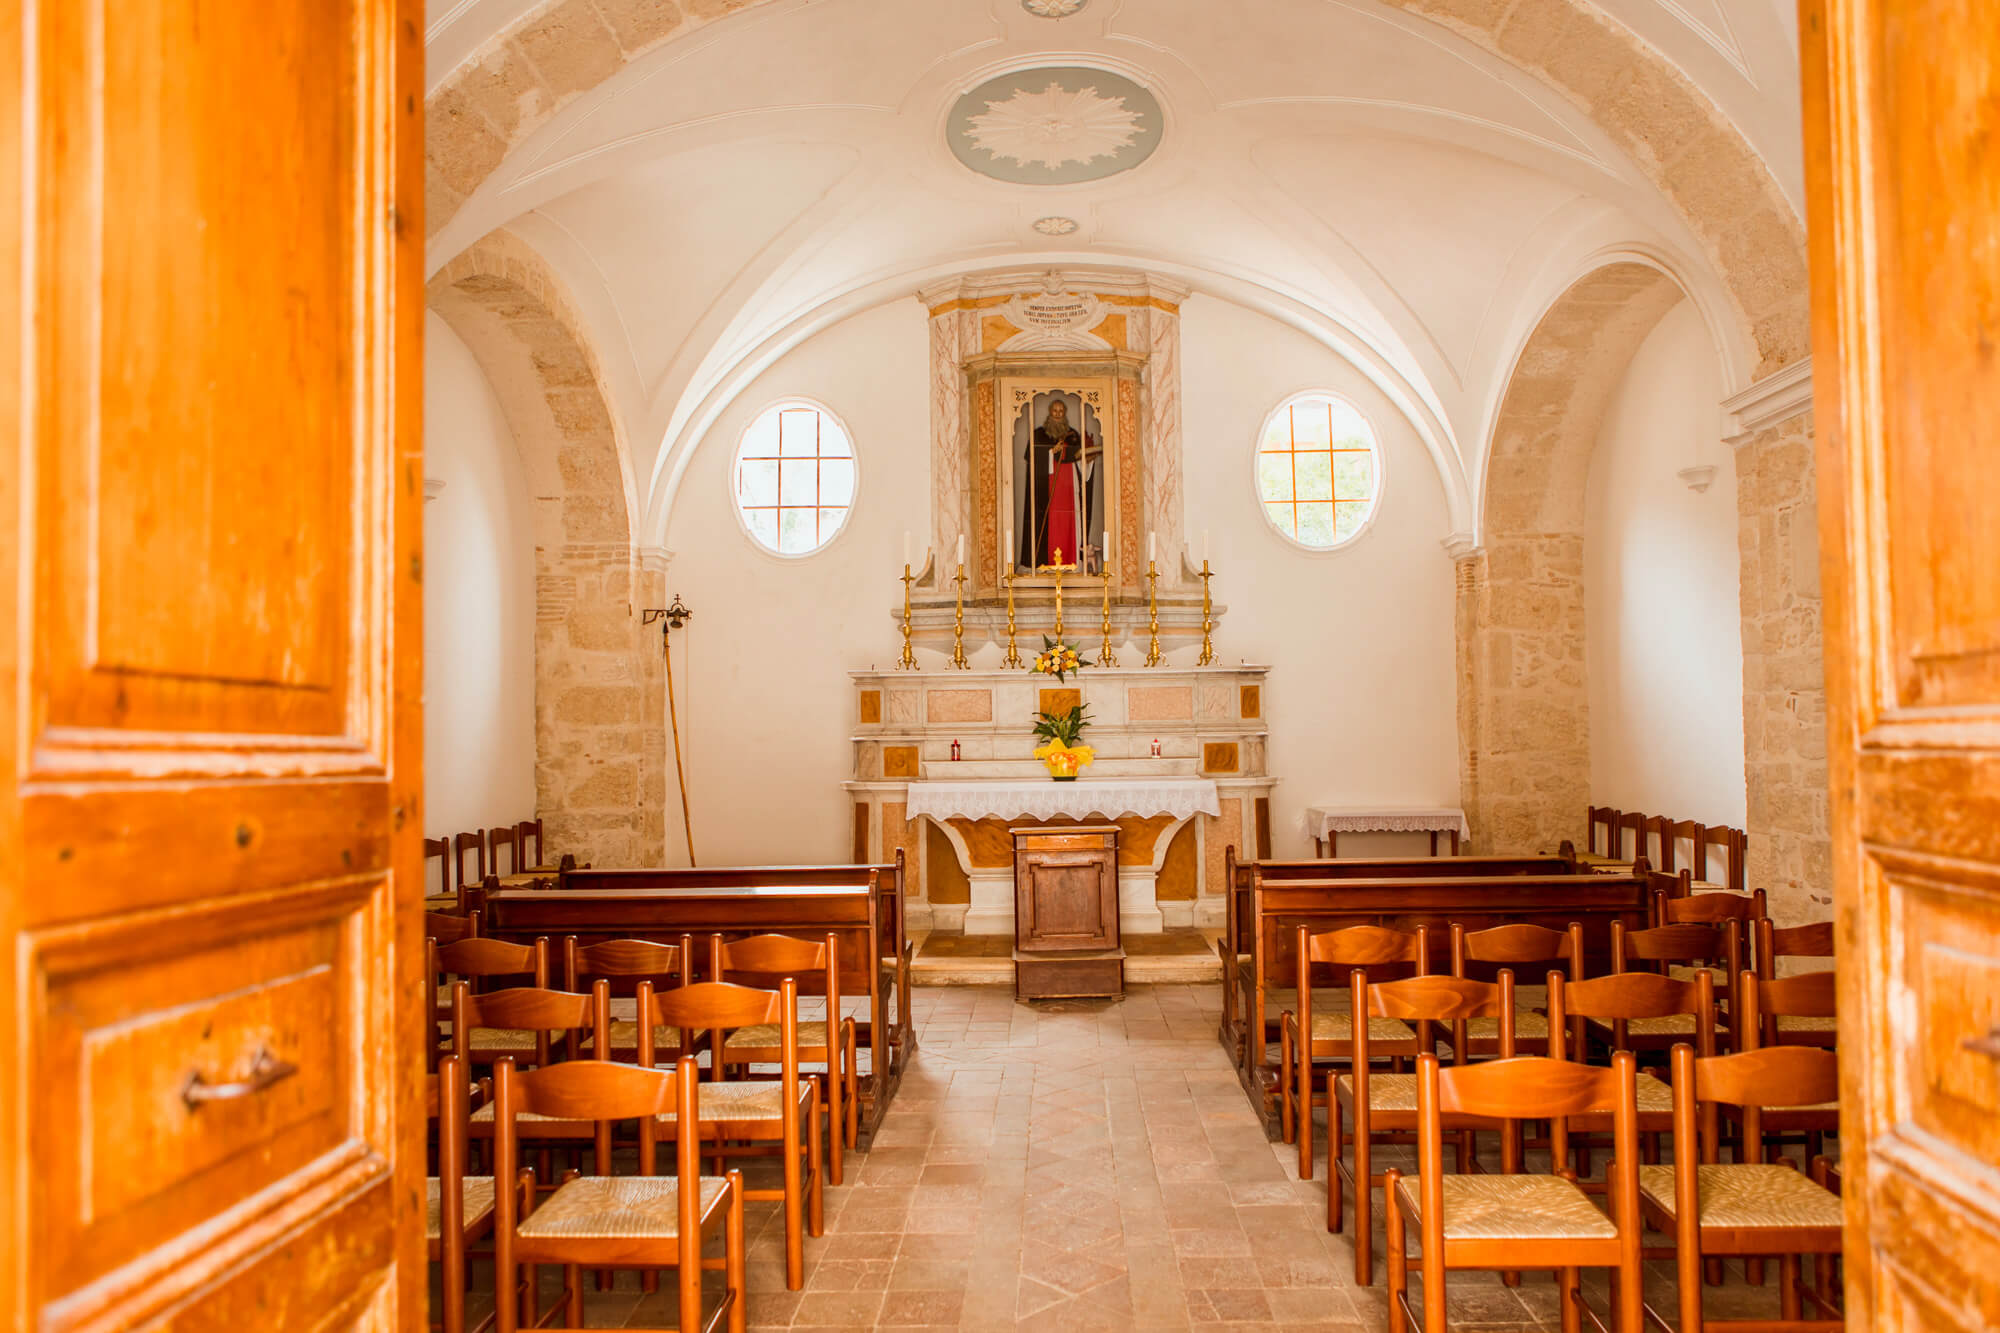 Chiese_Scanno-4